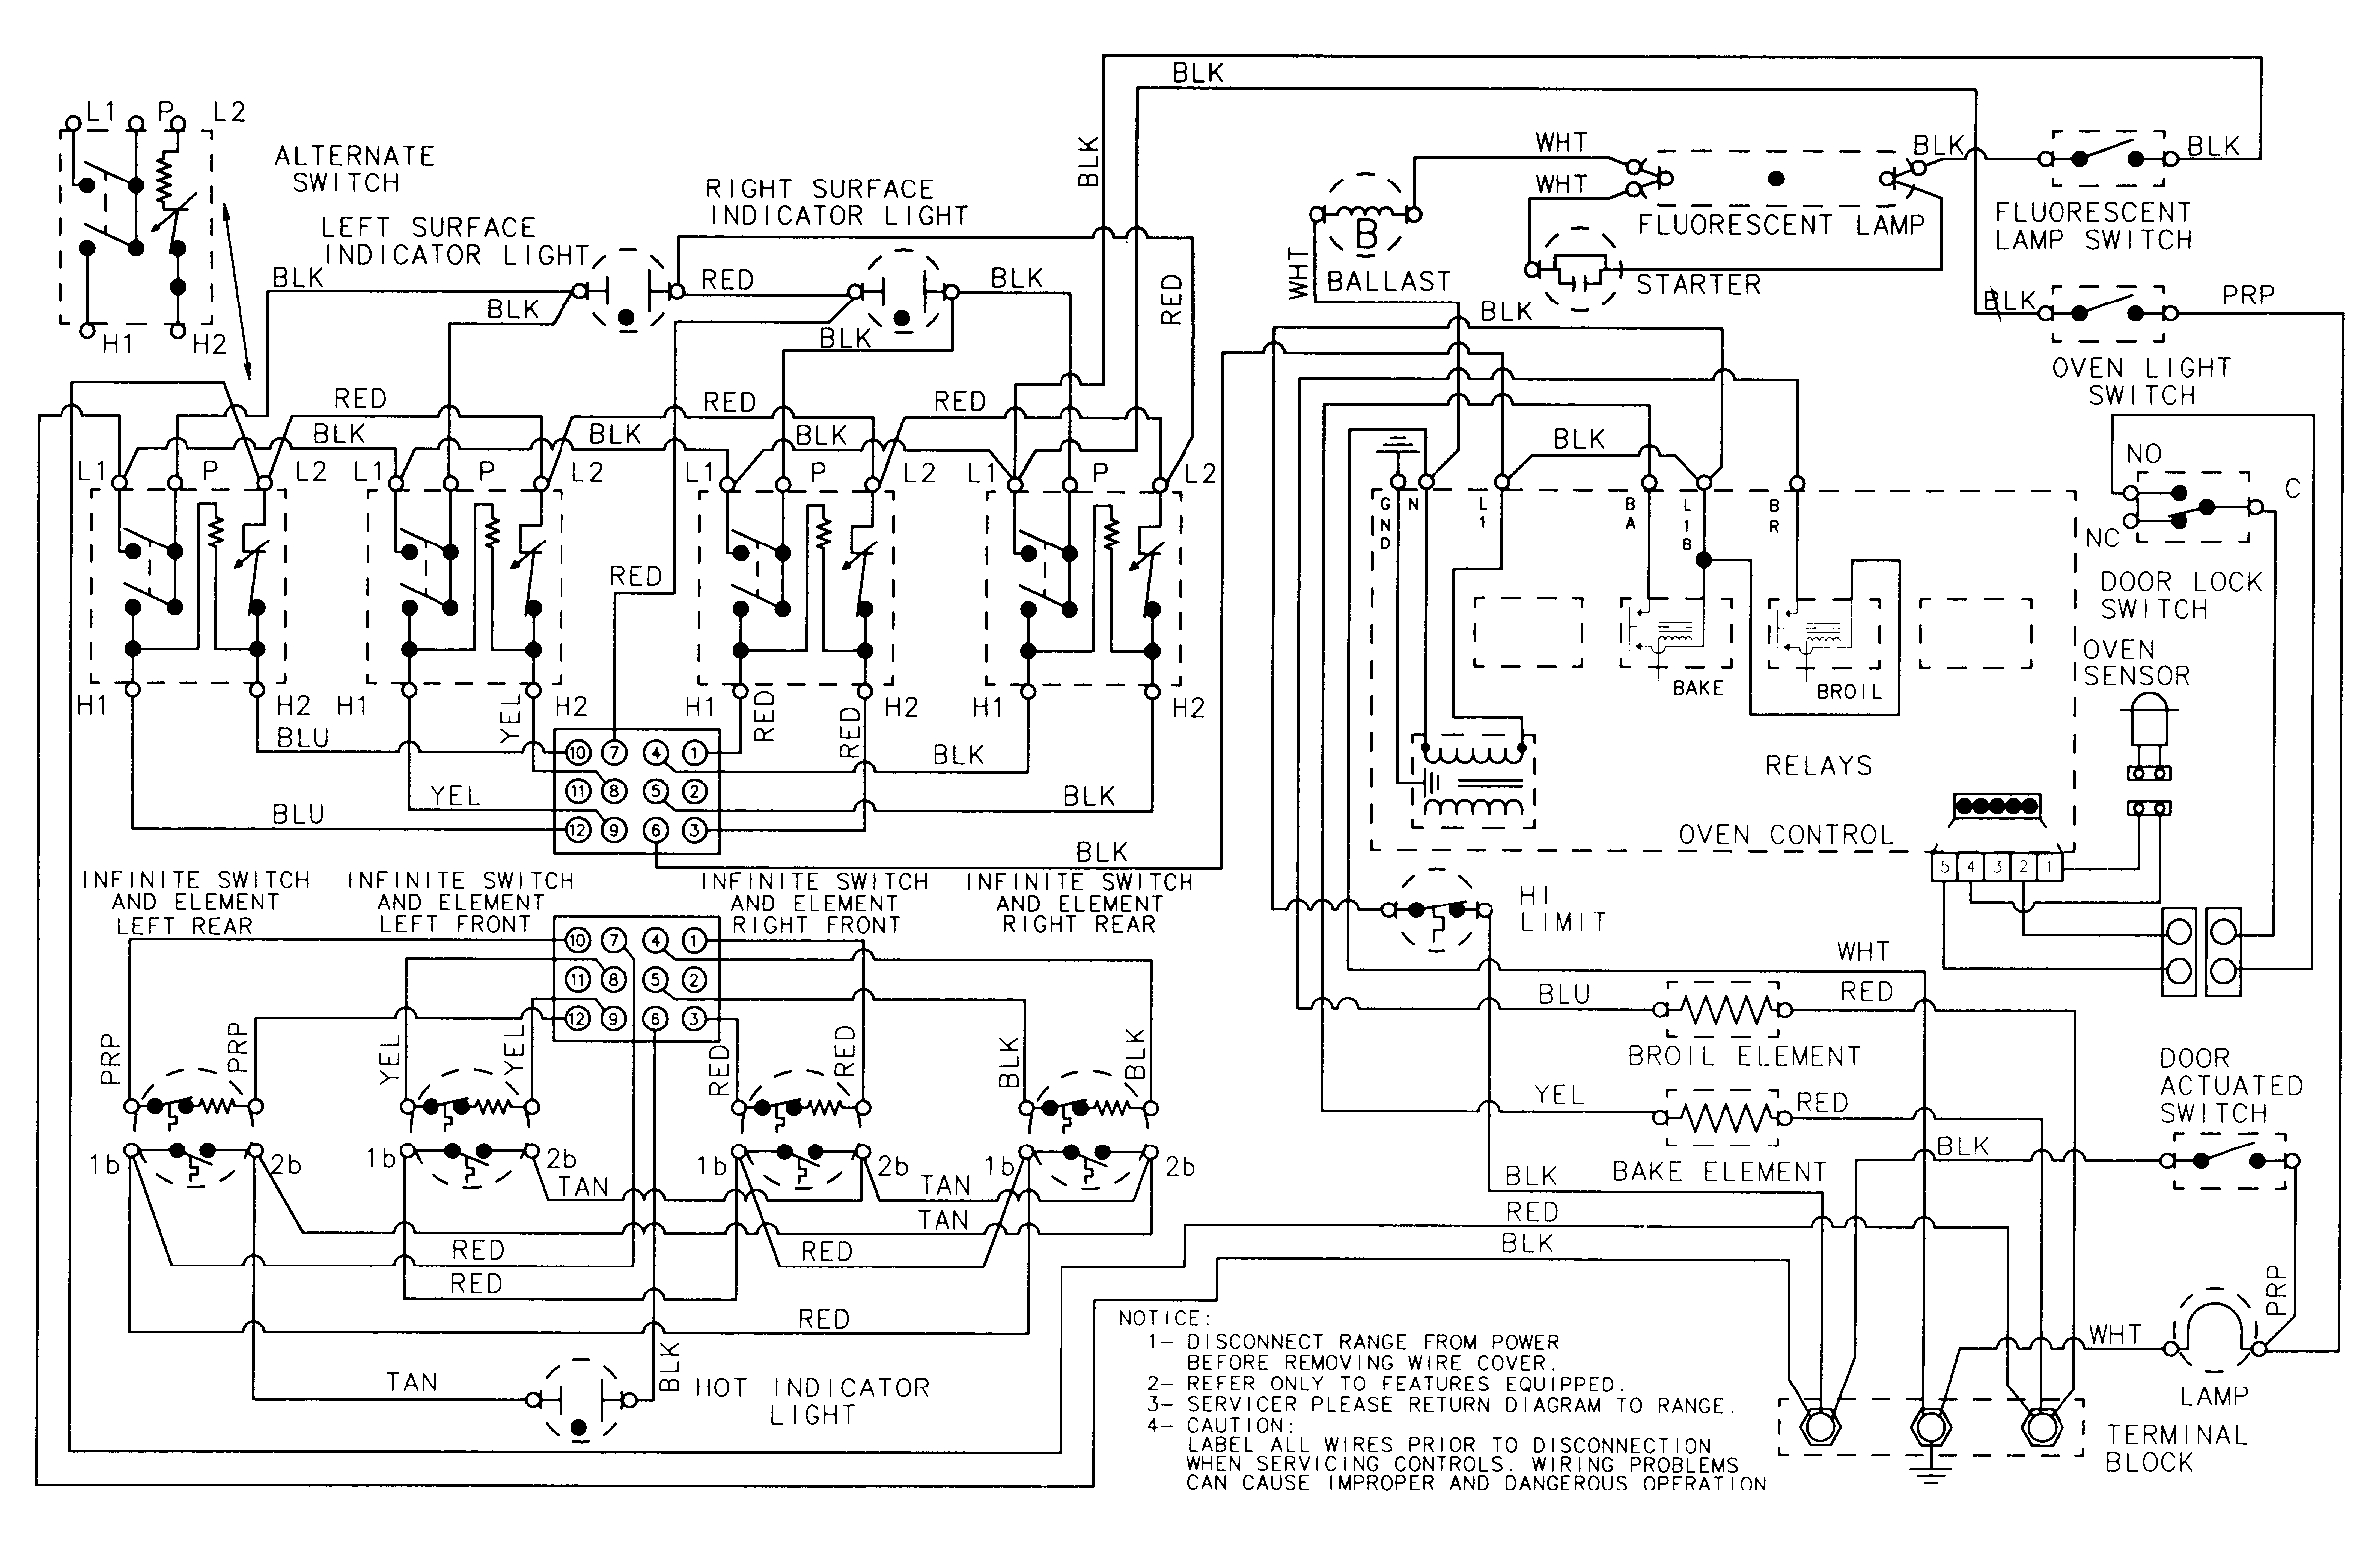 whirlpool dishwasher wiring diagram Collection-Whirlpool Dishwasher Parts  Diagram Best Maytag Cre9600 Timer Stove Clocks. DOWNLOAD. Wiring Diagram ...